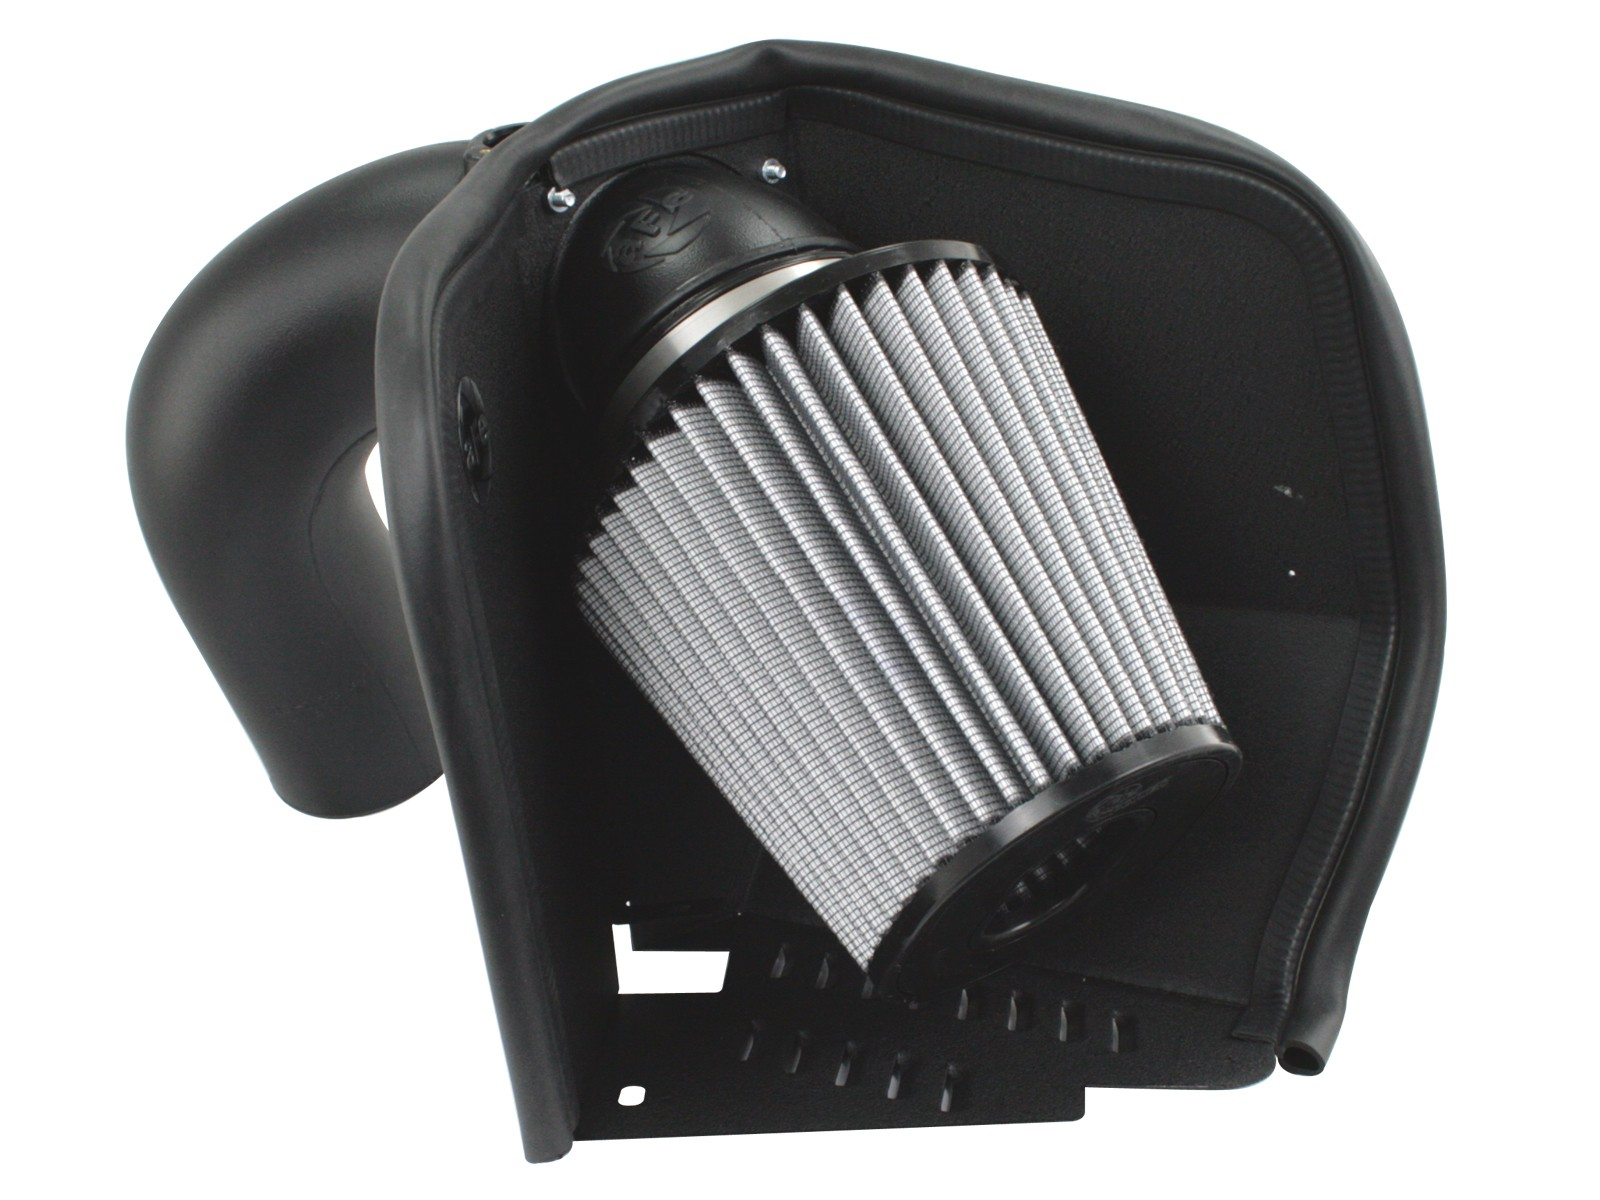 aFe POWER 51-31342-1 Magnum FORCE Stage-2 Pro DRY S Cold Air Intake System